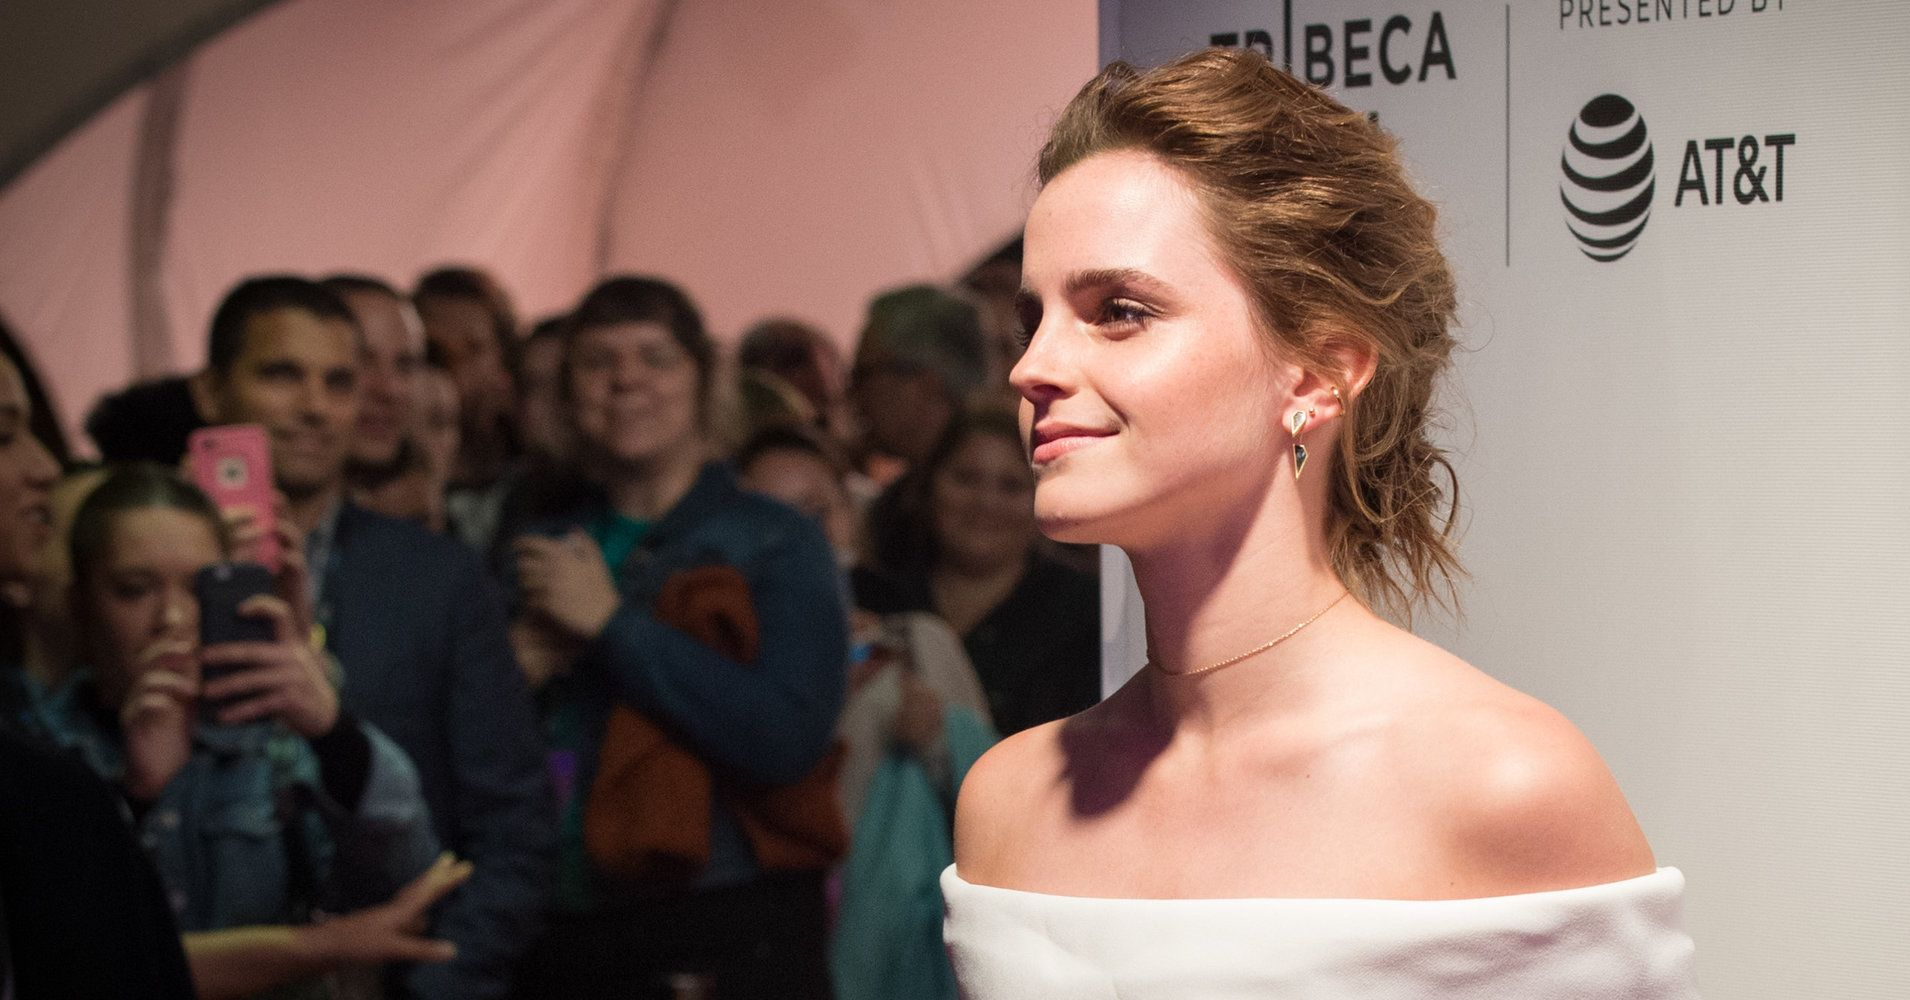 The Circleu Led Emma Watson To Think More About Internet Privacy